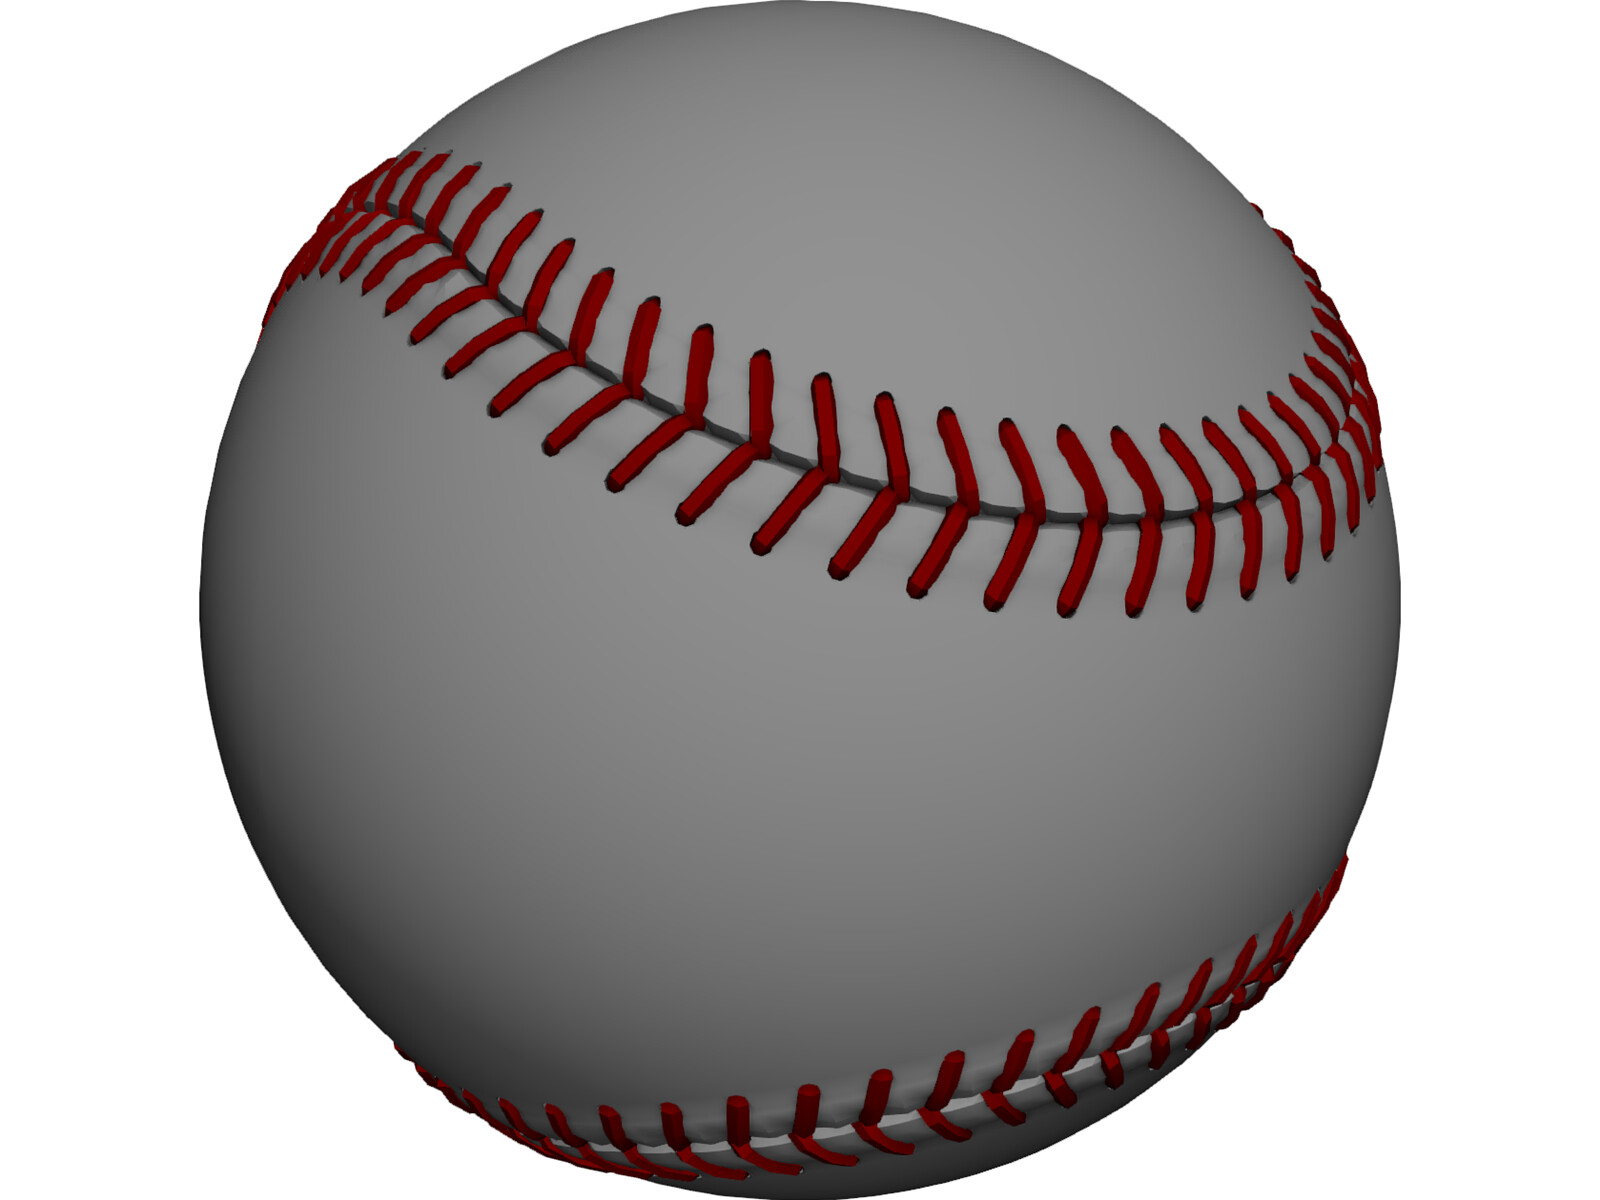 how to draw a 3d baseball